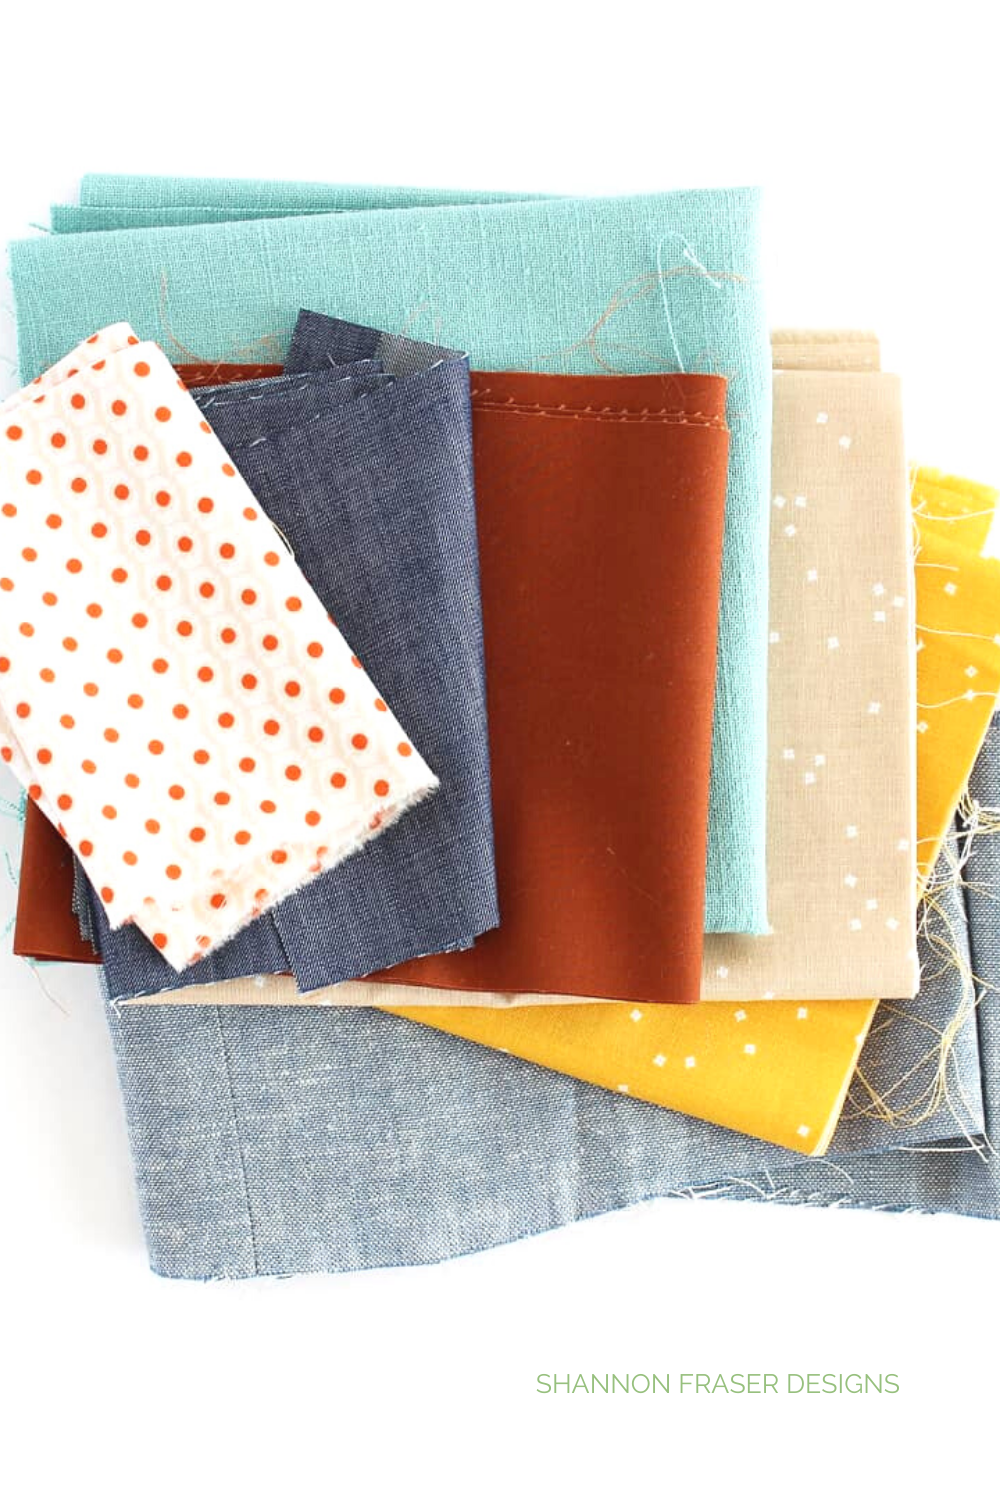 Stack of fabrics featured in the hand quilted Landmark wall hanging I made from the Urban Quilting book | Shannon Fraser Designs #fabricpull